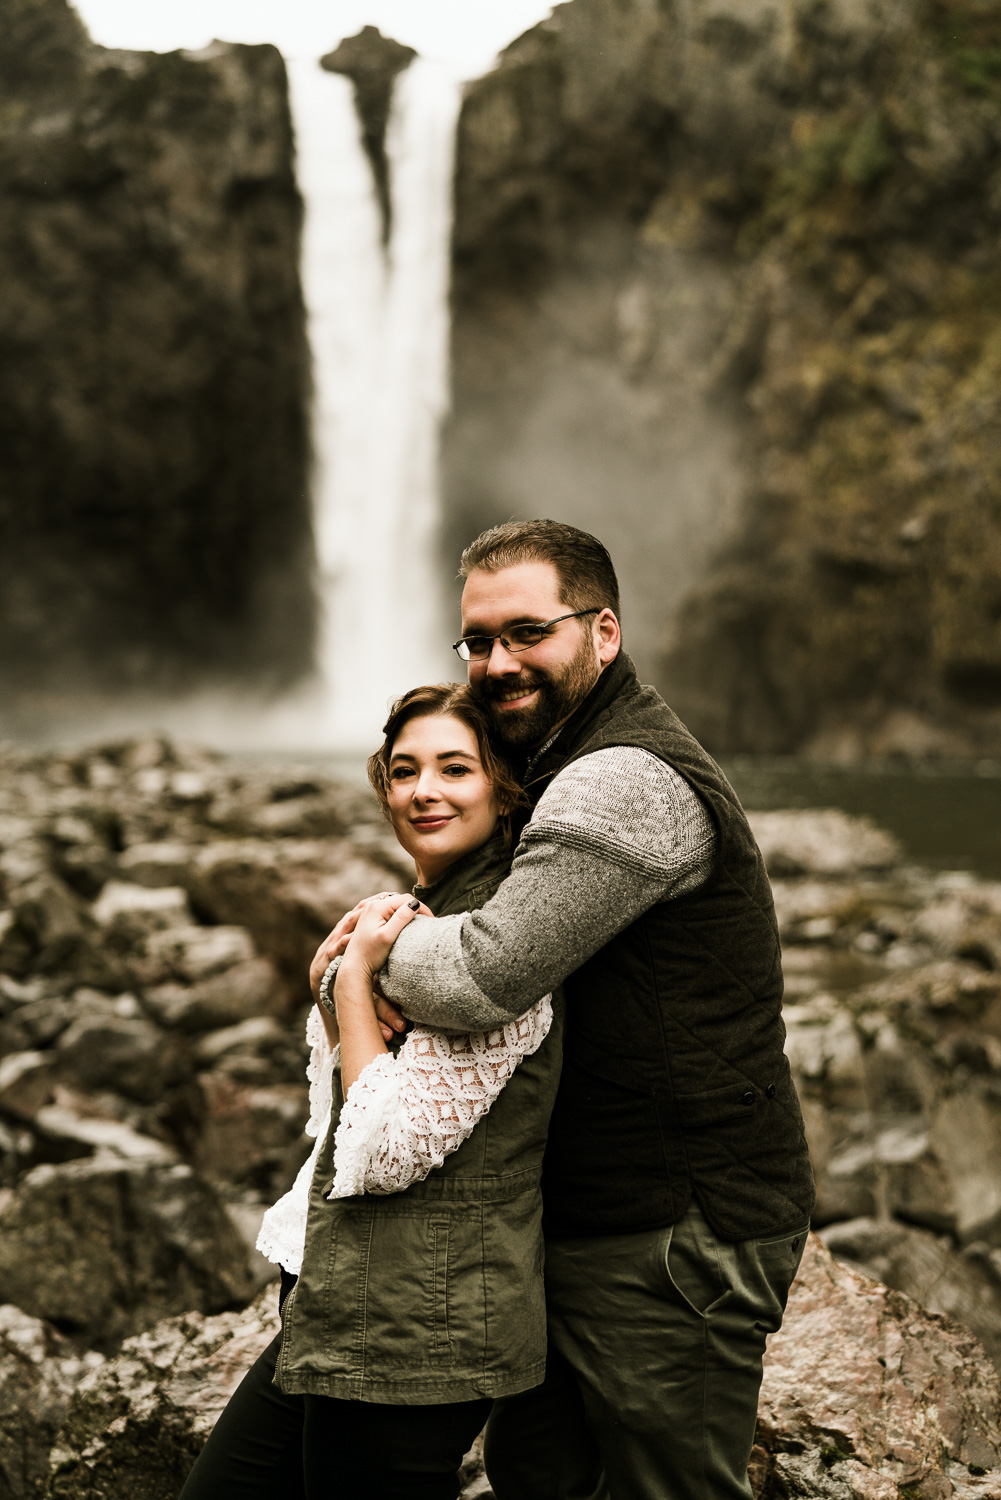 A Picturesque PNW Engagement Session | Snoqualmie Falls | Seattle Wedding photographer-6.jpg